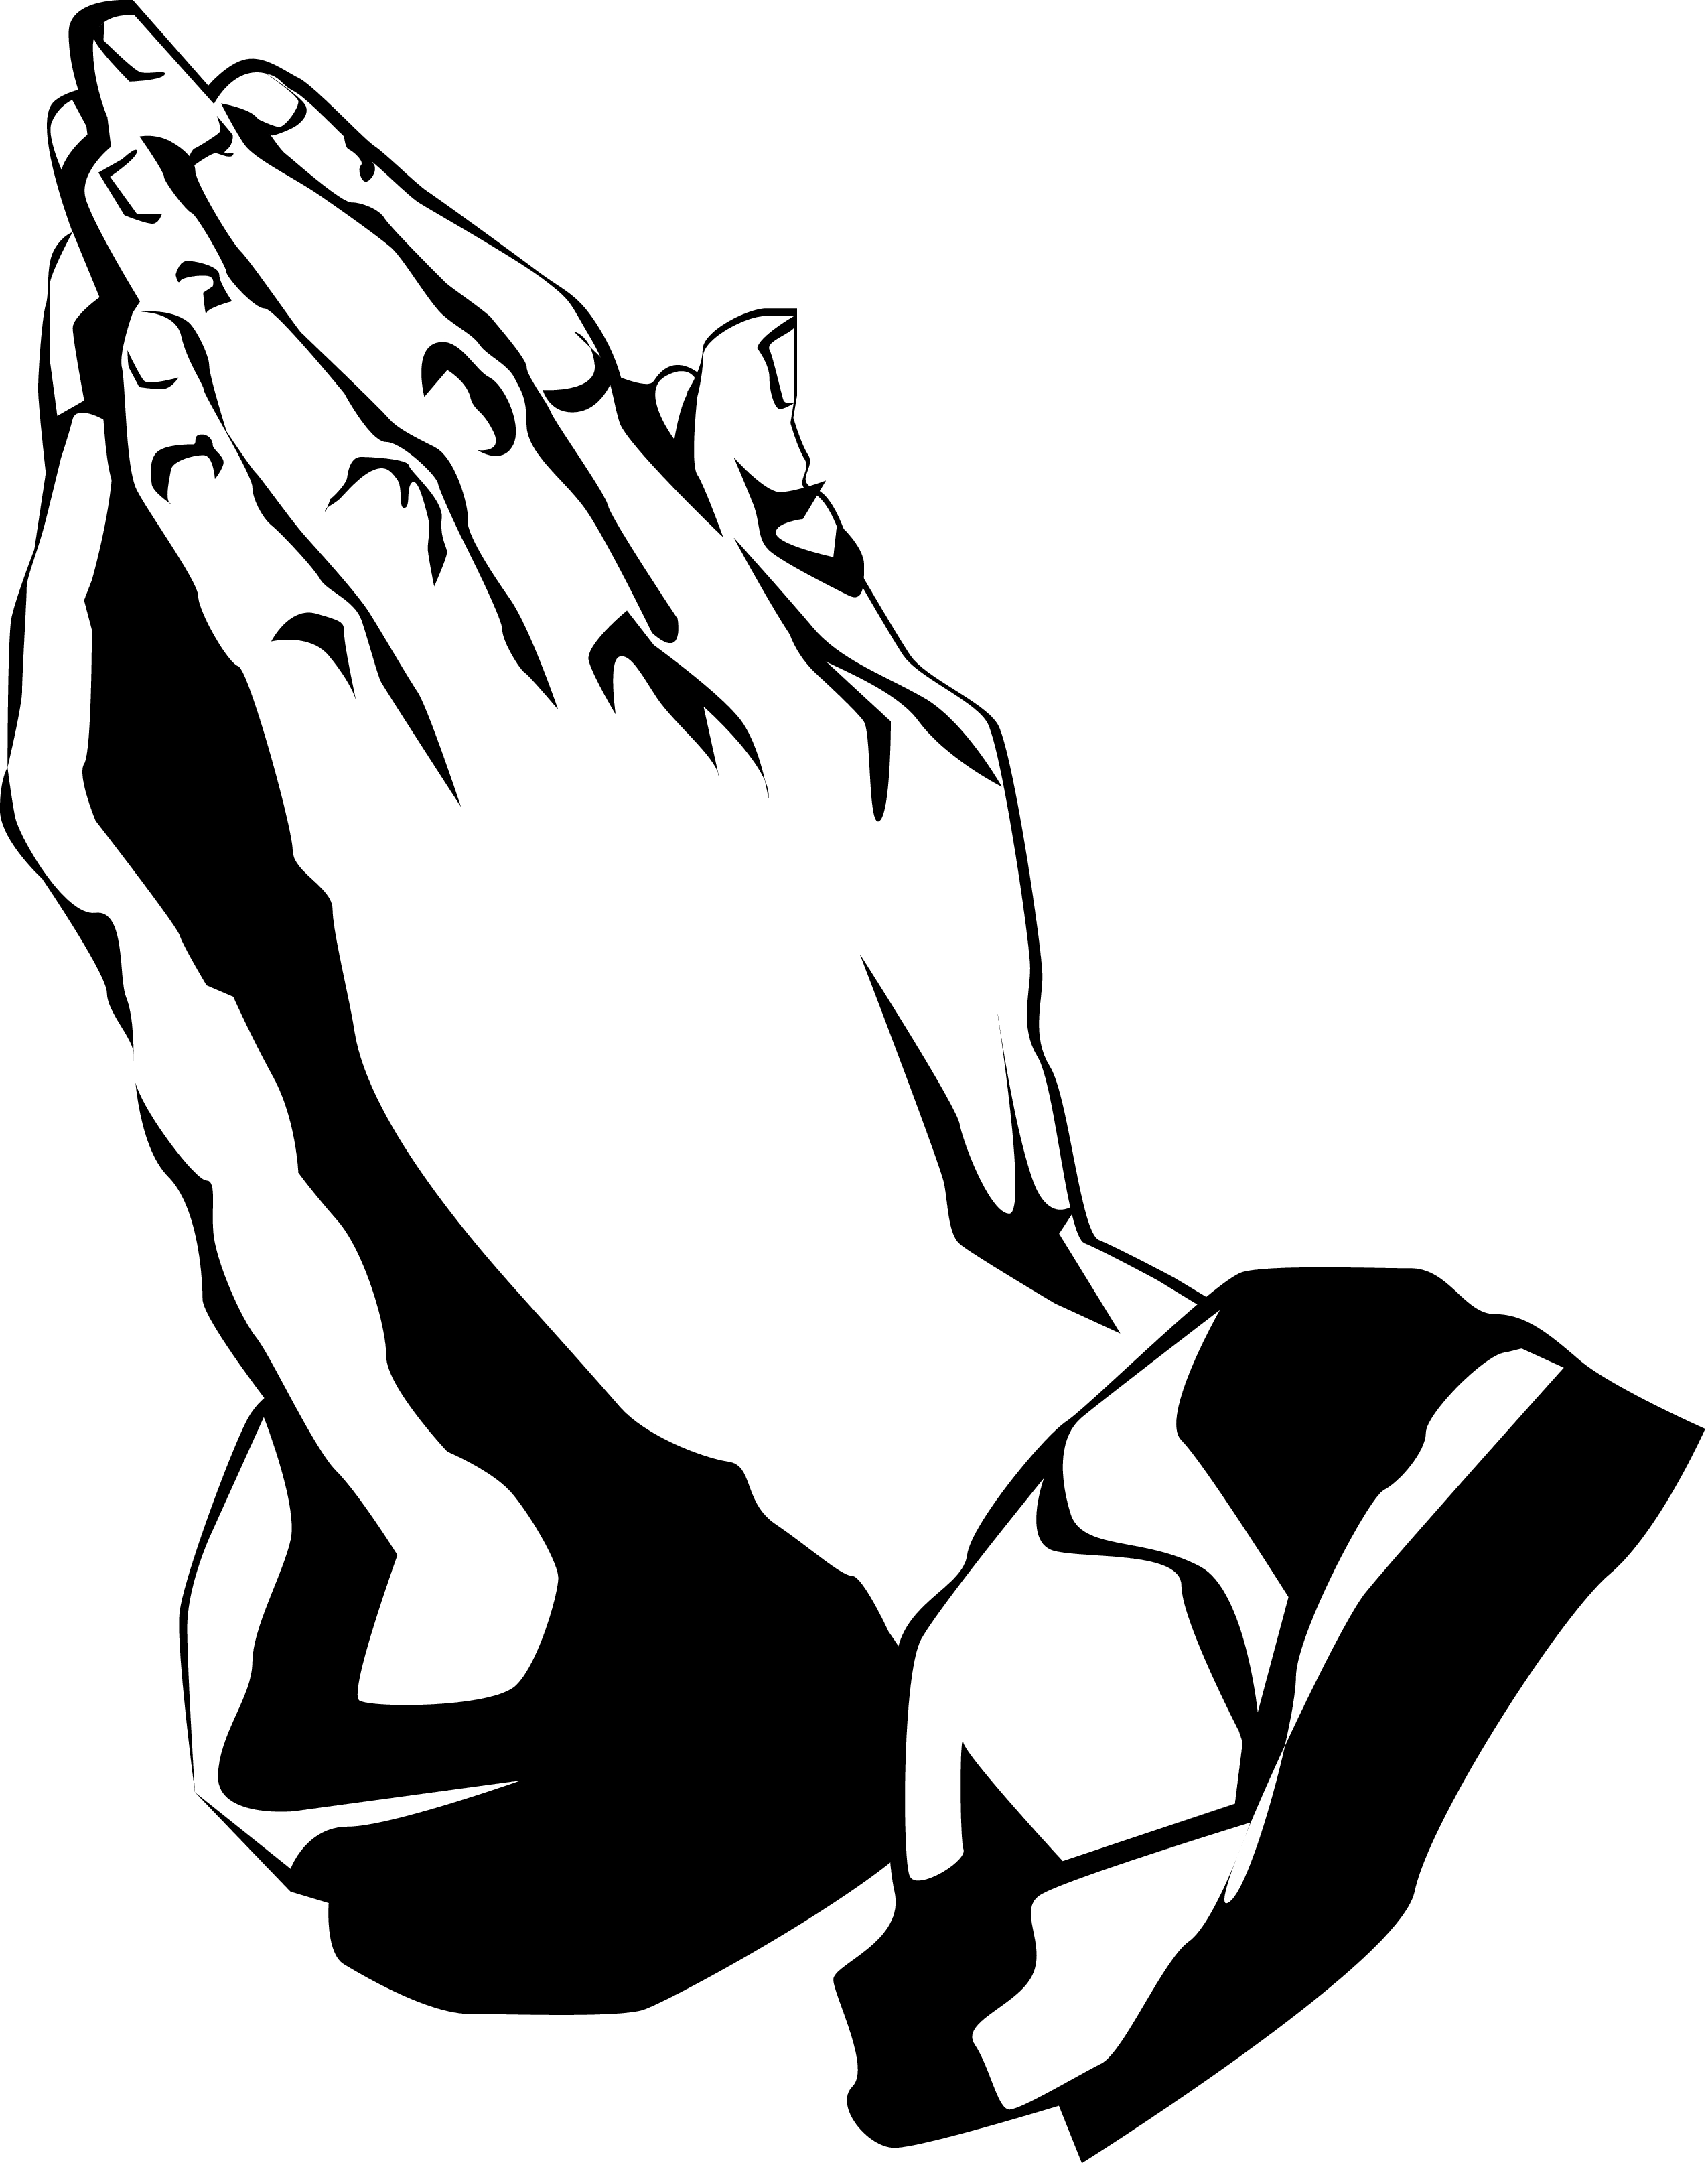 Gods clipart helping hand Helping of clipart hands clipart